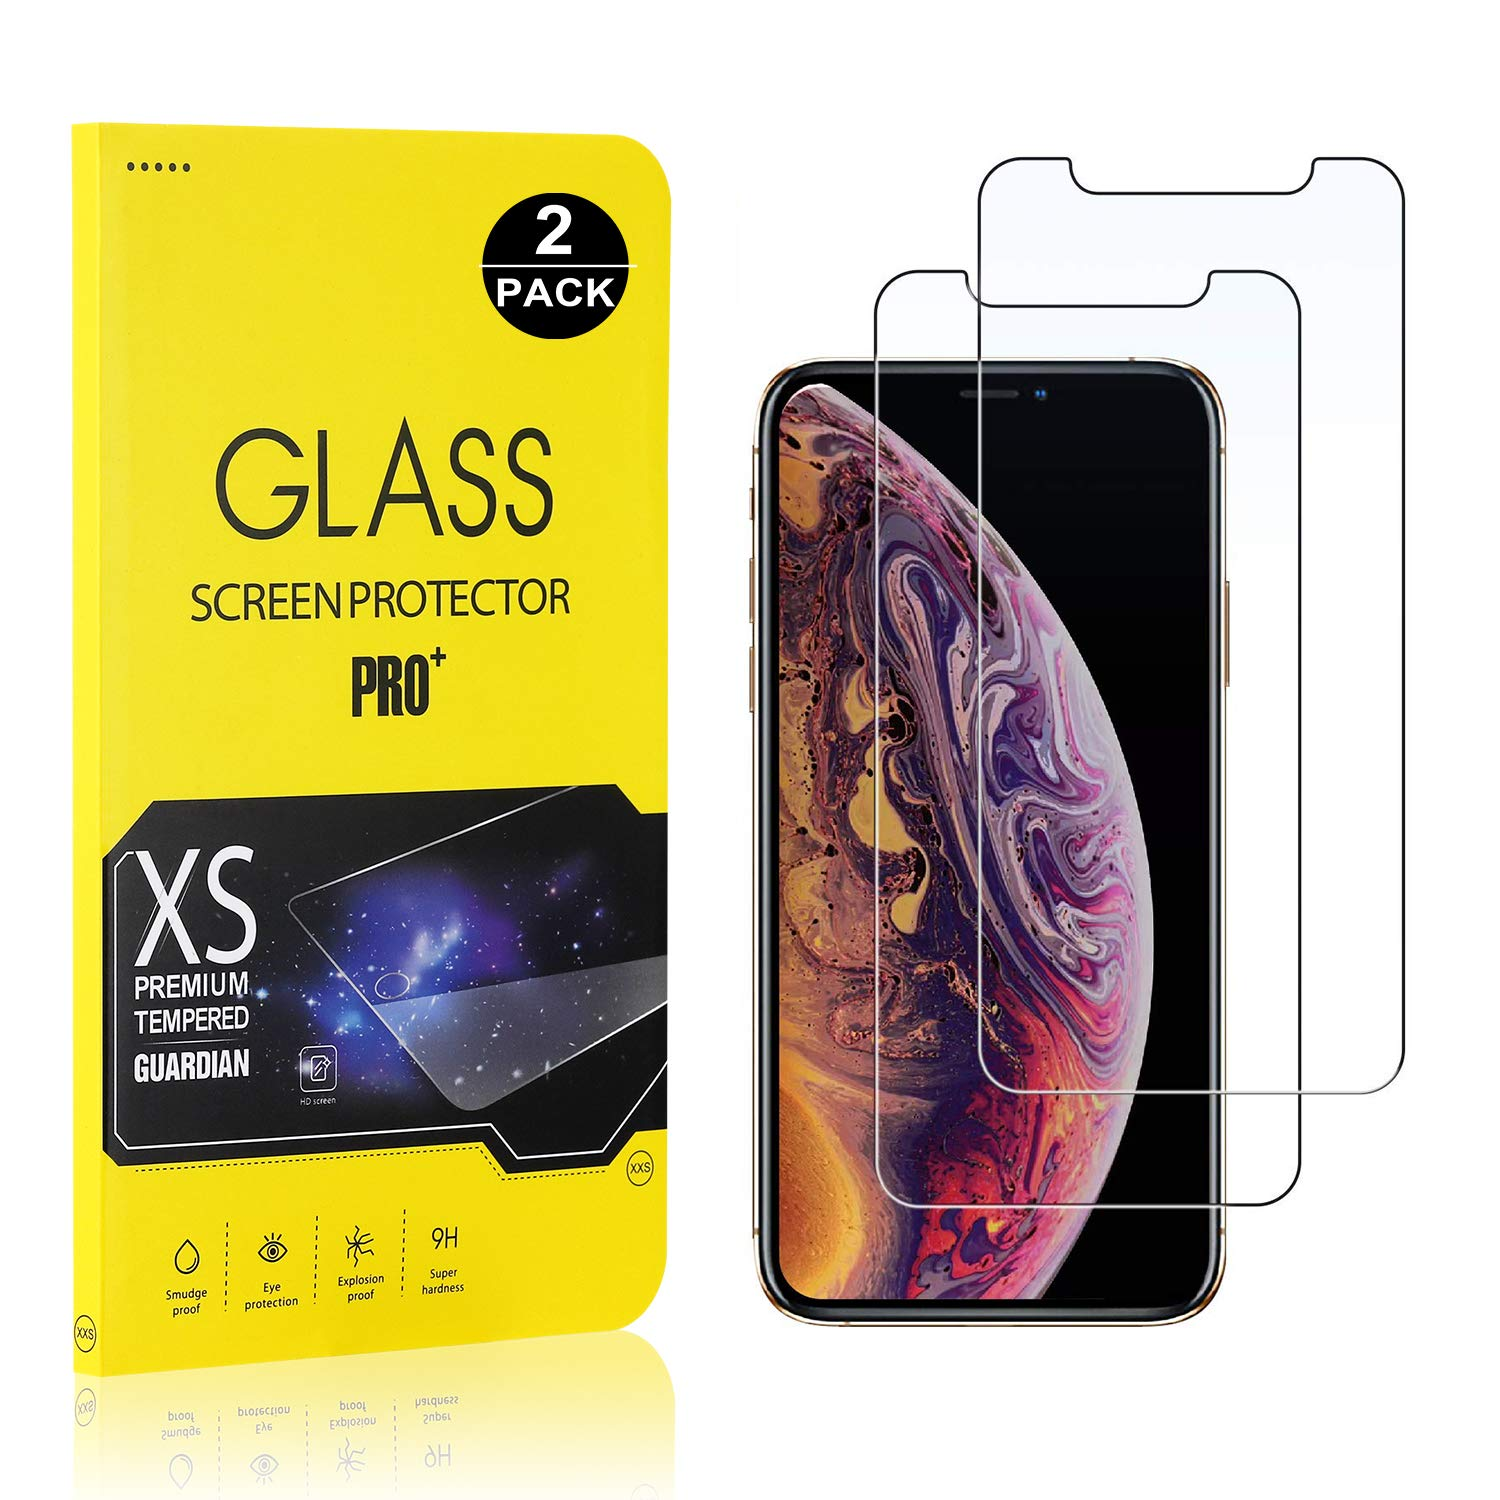 Screen Protector for iPhone Xs/iPhone X, Bear Village Tempered Glass Screen Protector, 9H Hardness Screen Protector Film for iPhone Xs/iPhone X, 2 Pack